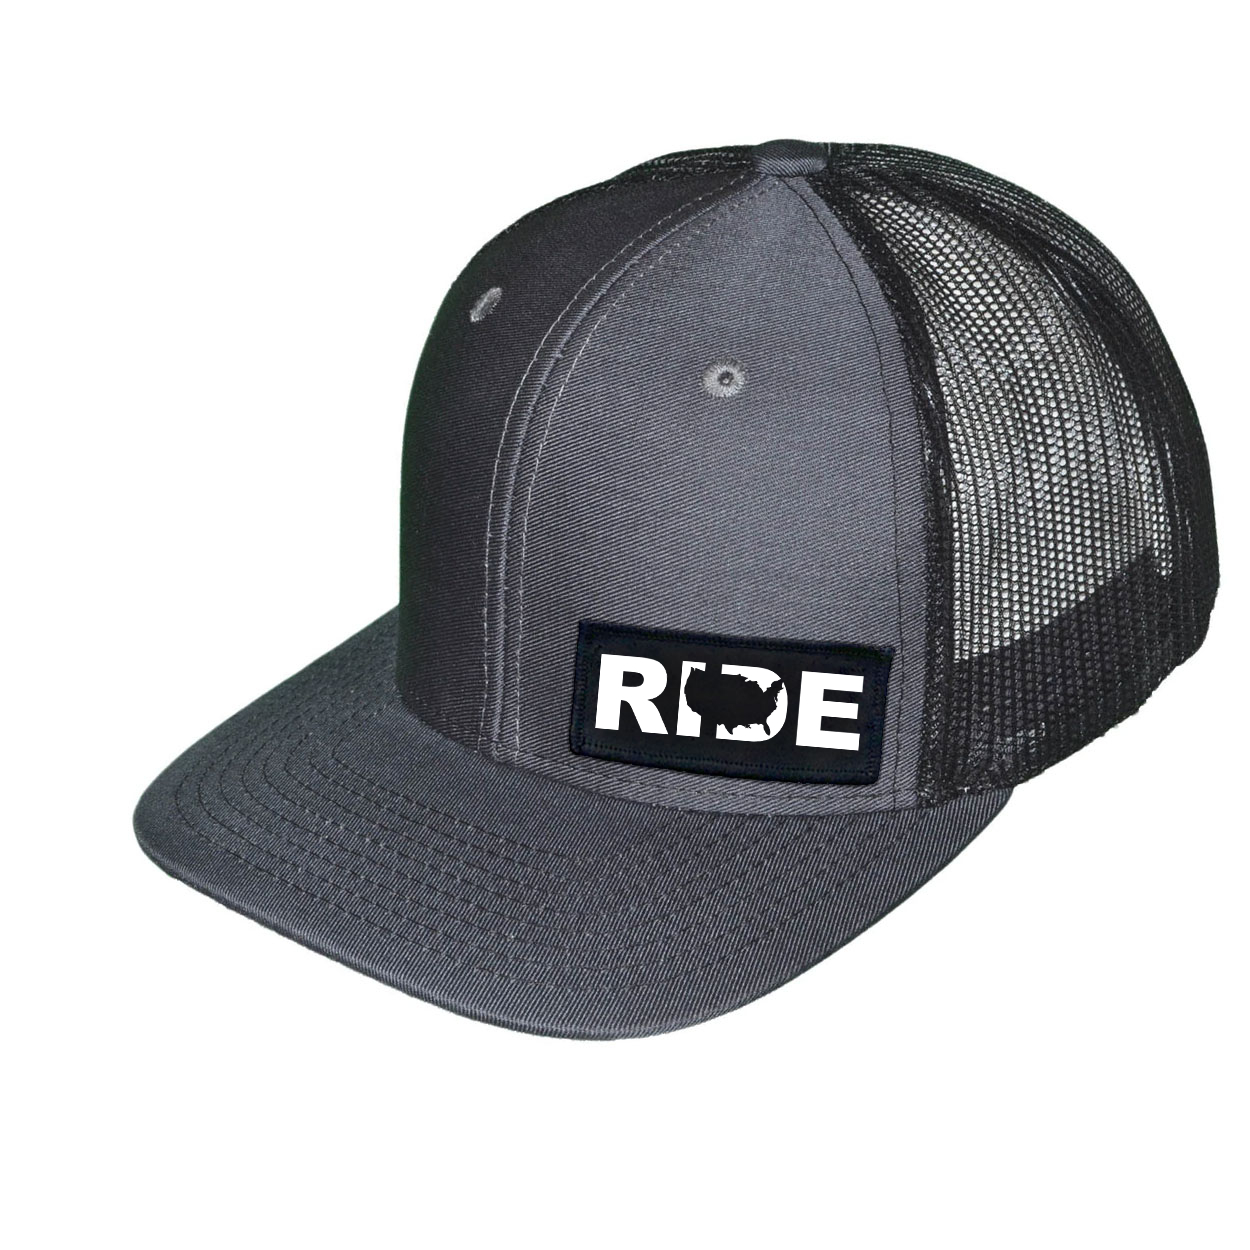 Ride United States Night Out Woven Patch Snapback Trucker Hat Dark Gray/Black (White Logo)